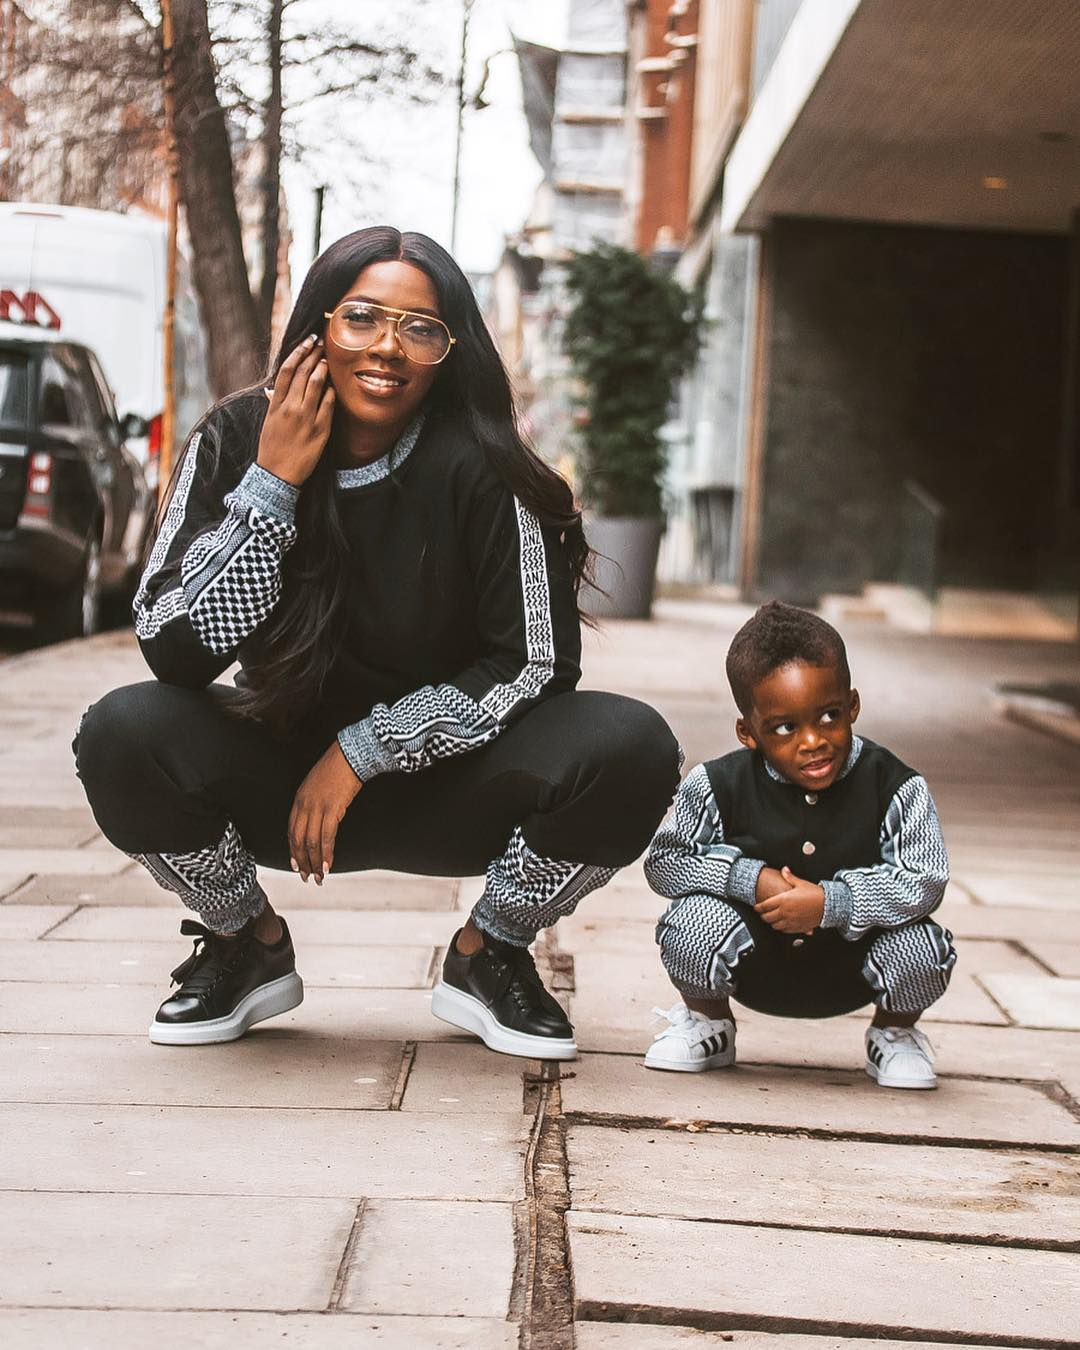 HOT!!!: Tiwa Savage And Her Son Rock Matching Outfits